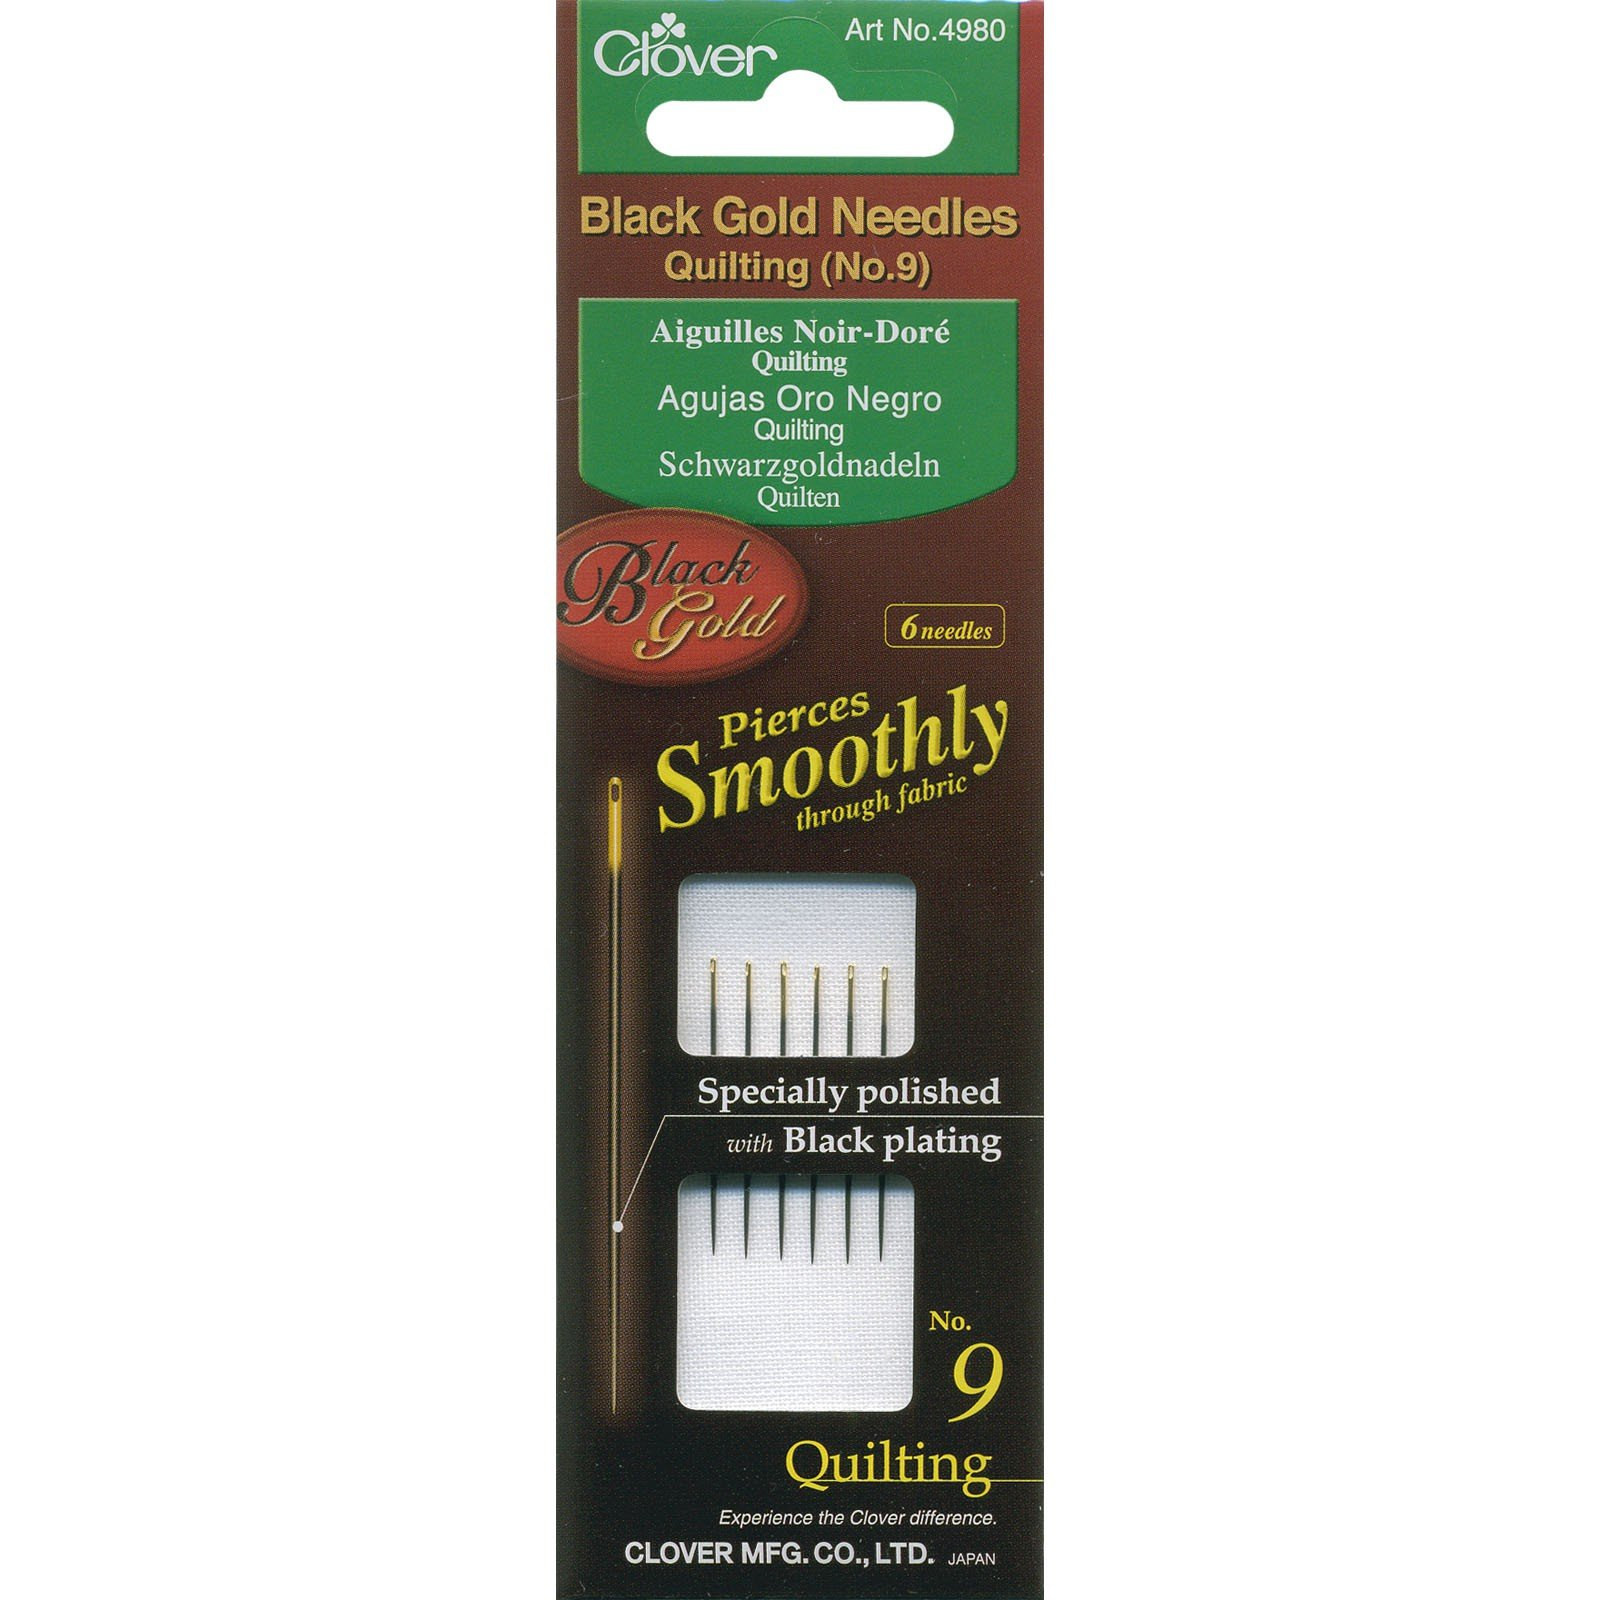 Clover Black Gold Quilting Needle sz. 9